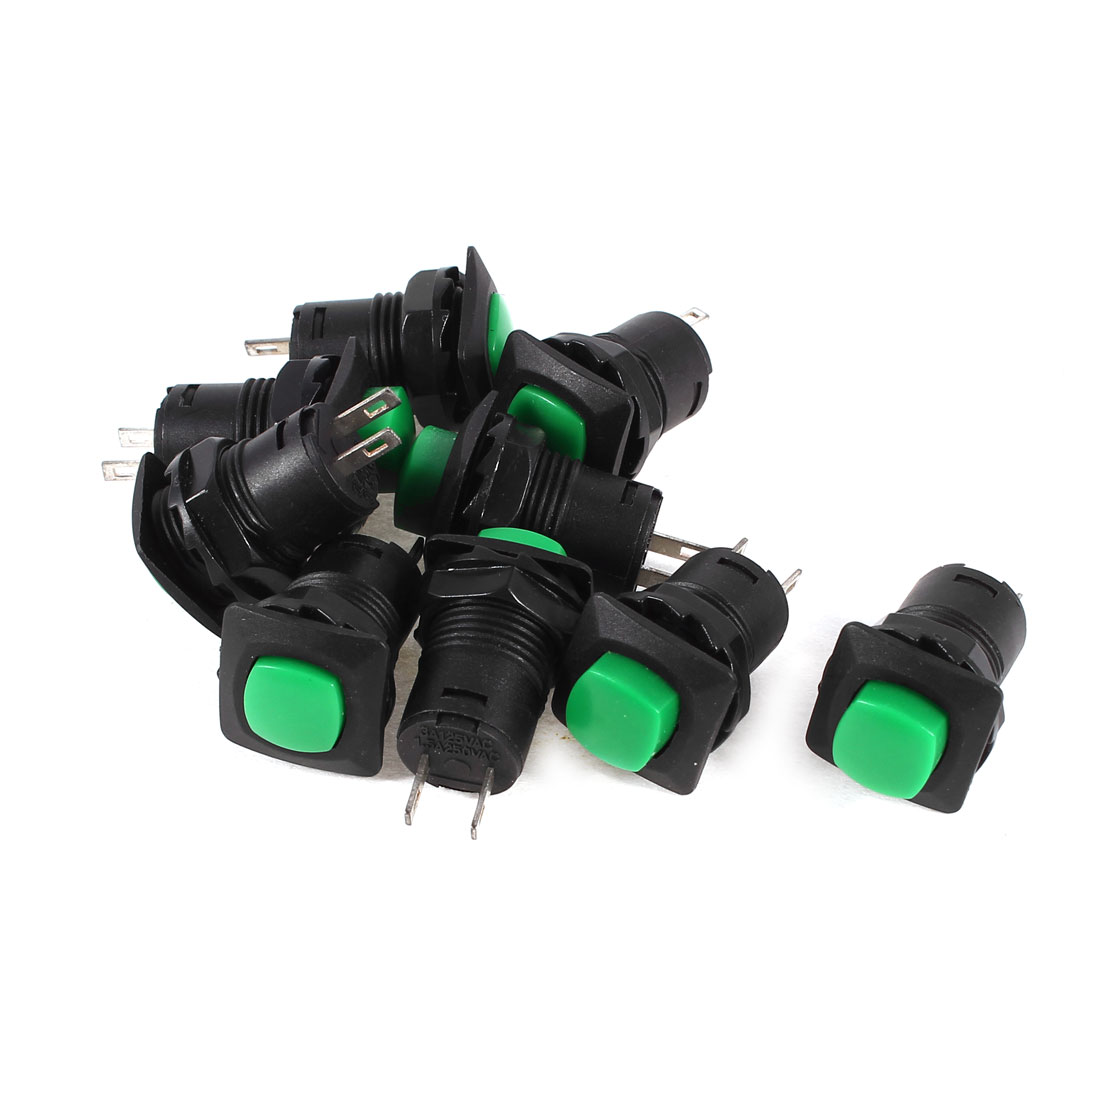 9 Pcs DS-426 AC 125V/250V 3A/1.5A Momentary Green Push Button Switch